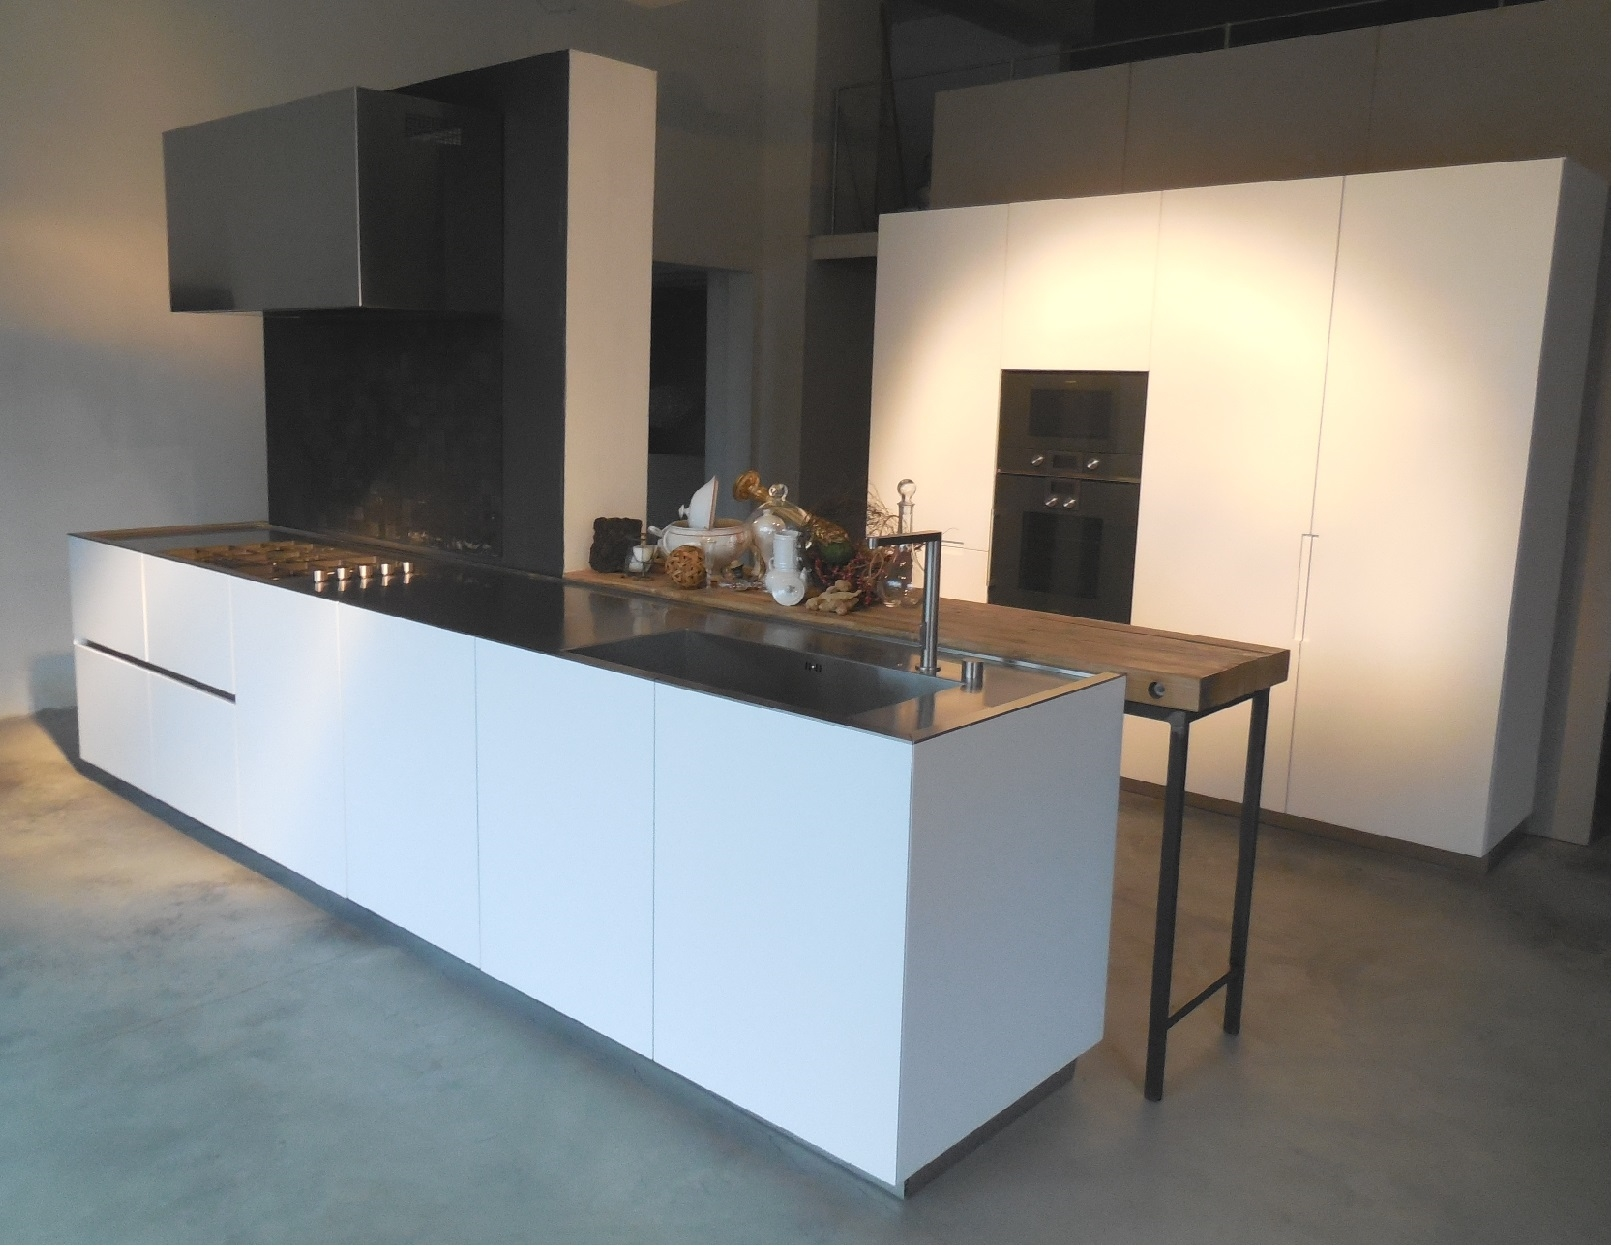 Vendita cucine on line prezzi jollynox can coperchio nero for Cucine on line outlet